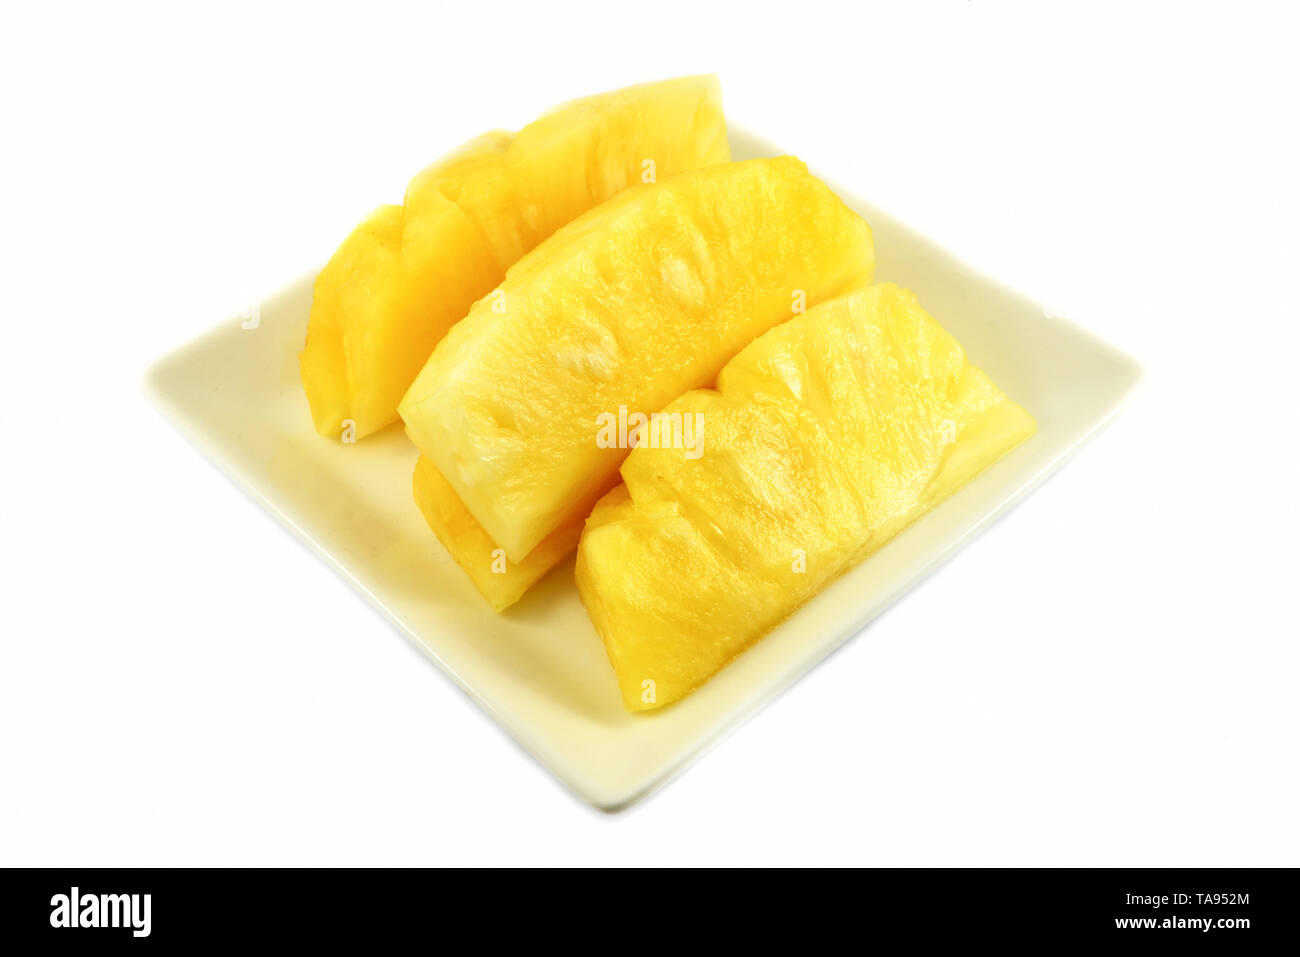 fresh pineapple isolated / sweet pineapple fruits slice isolated on white background tropical fruit on plate - Stock Image